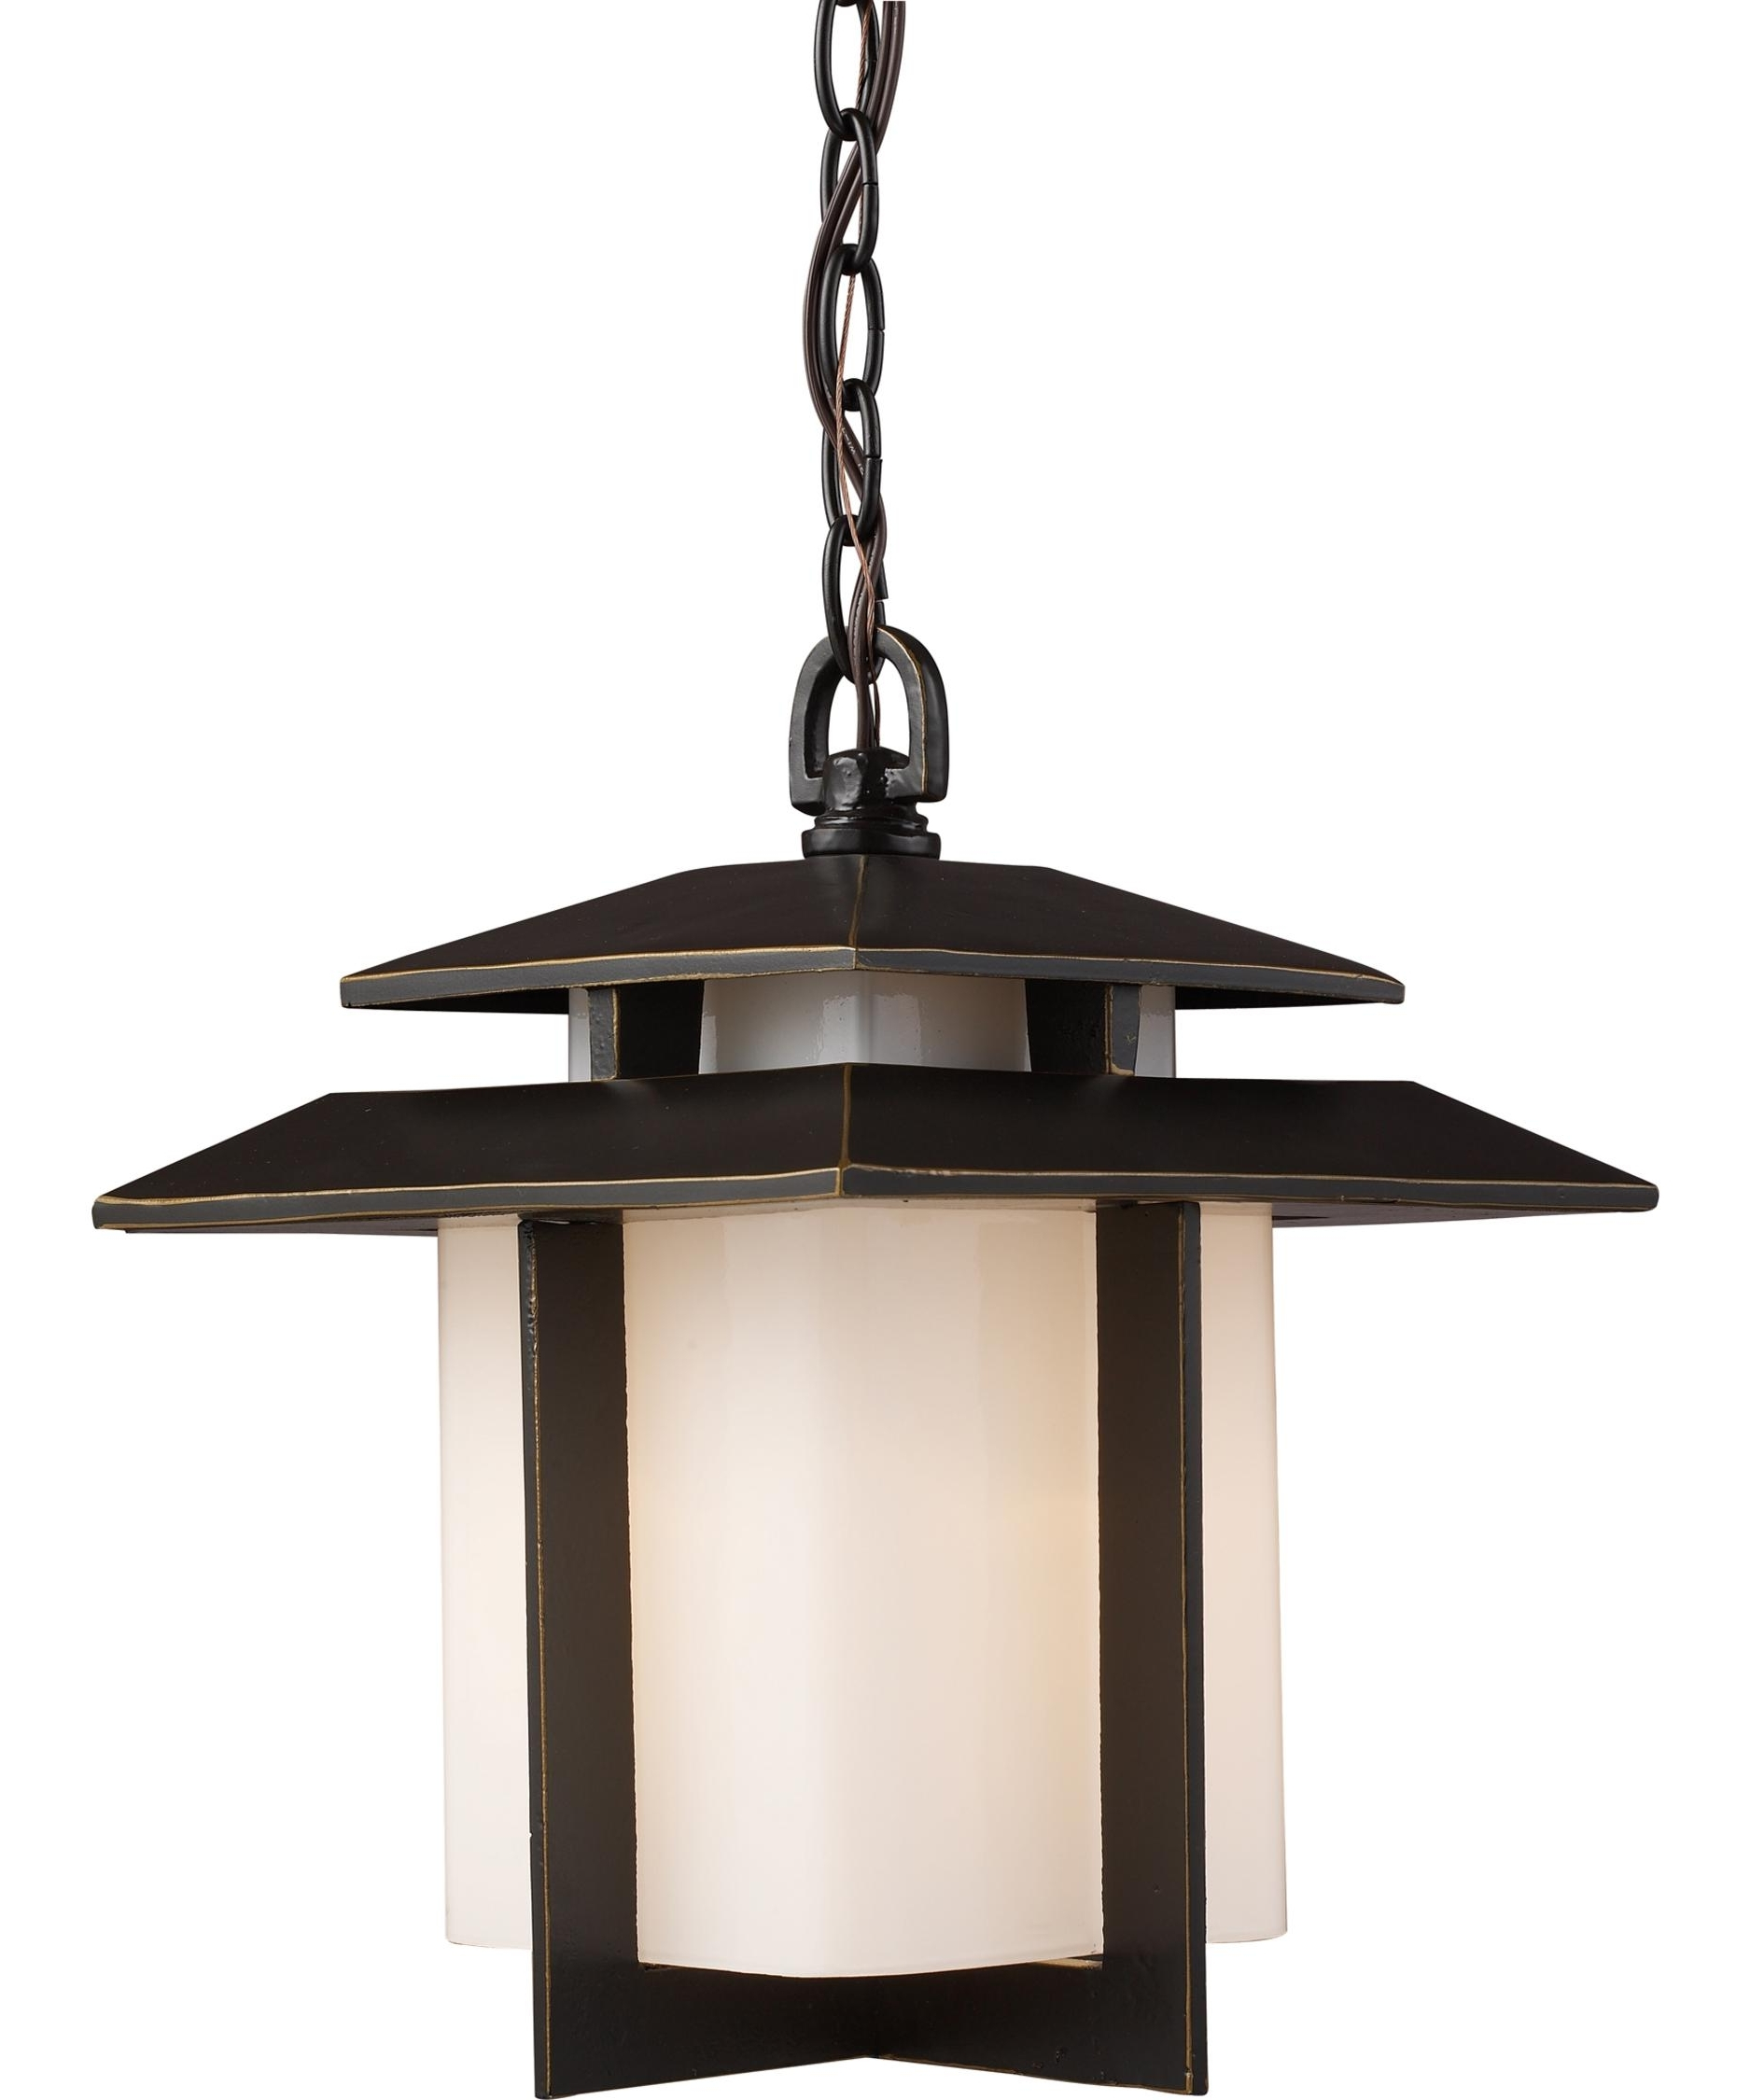 Well Known Outdoor Japanese Lanterns For Sale Throughout Elk Lighting 42172 1 Kanso 10 Inch Wide 1 Light Outdoor Hanging (View 20 of 20)